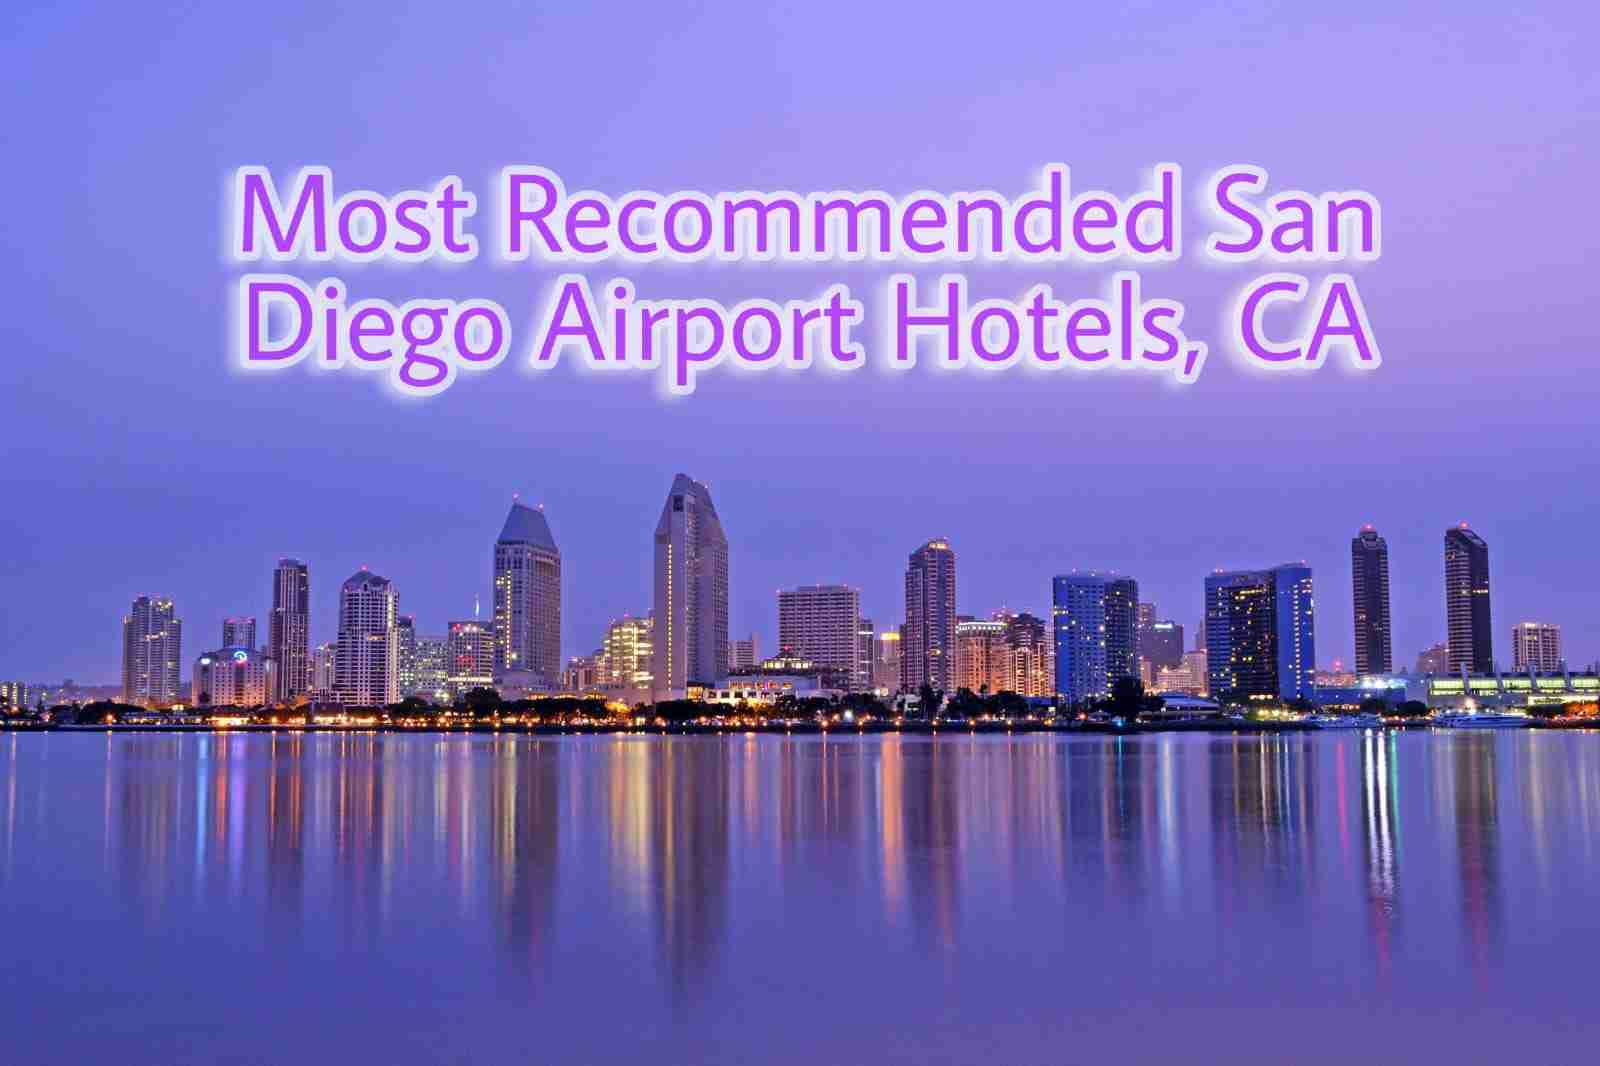 Most Recommended San Diego Airport Hotels, CA